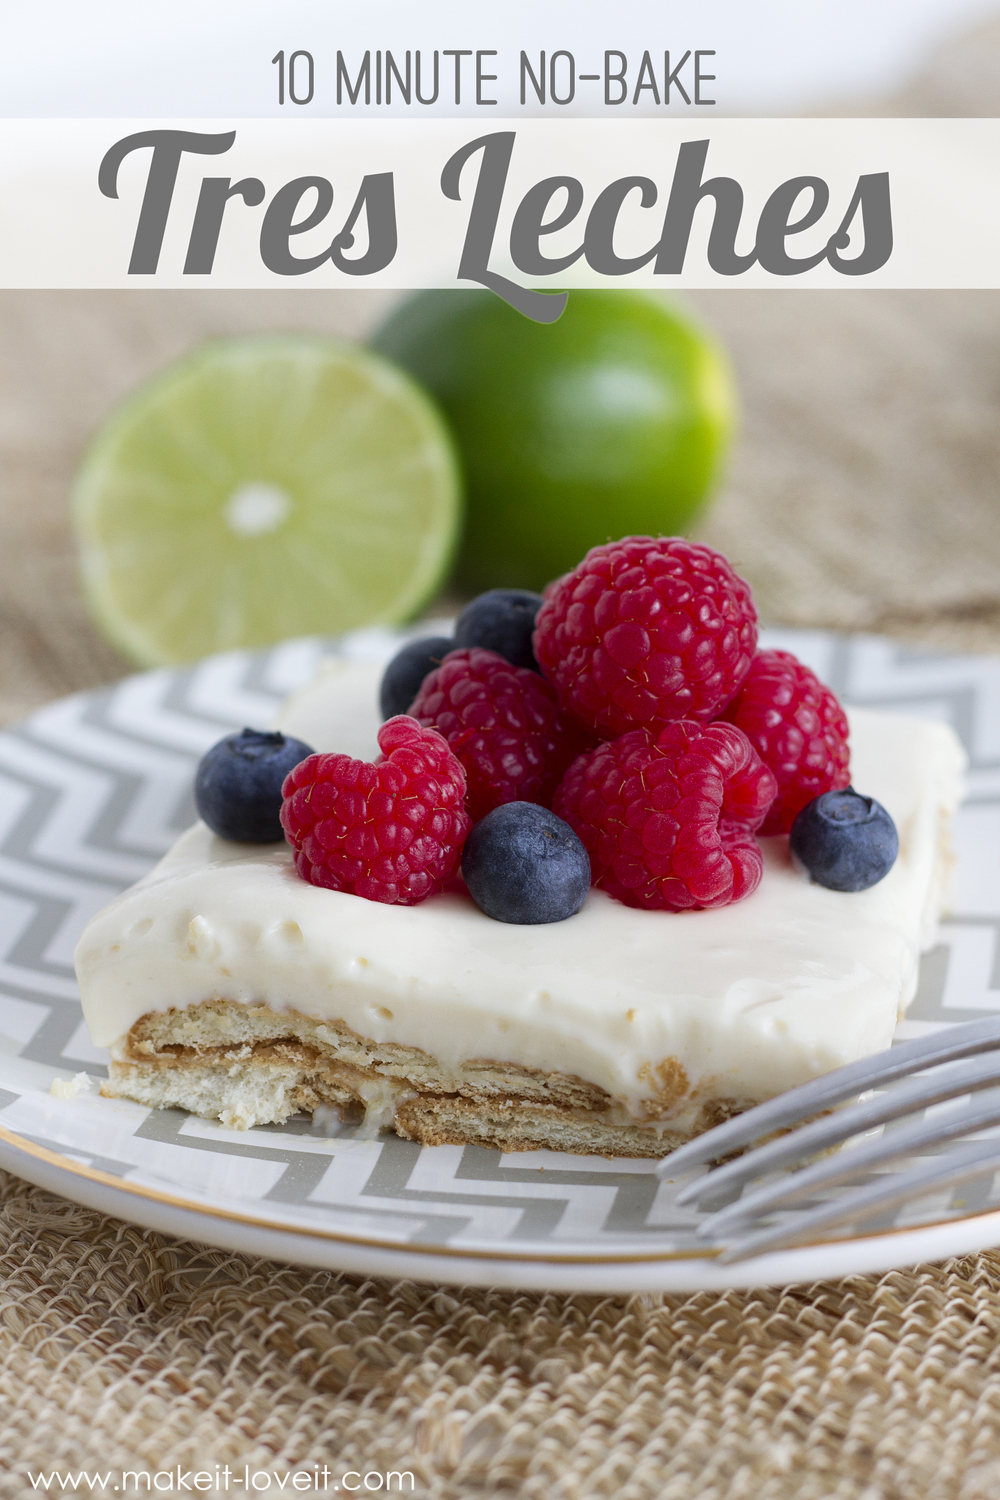 10 minute no bake tres leches dessert 1